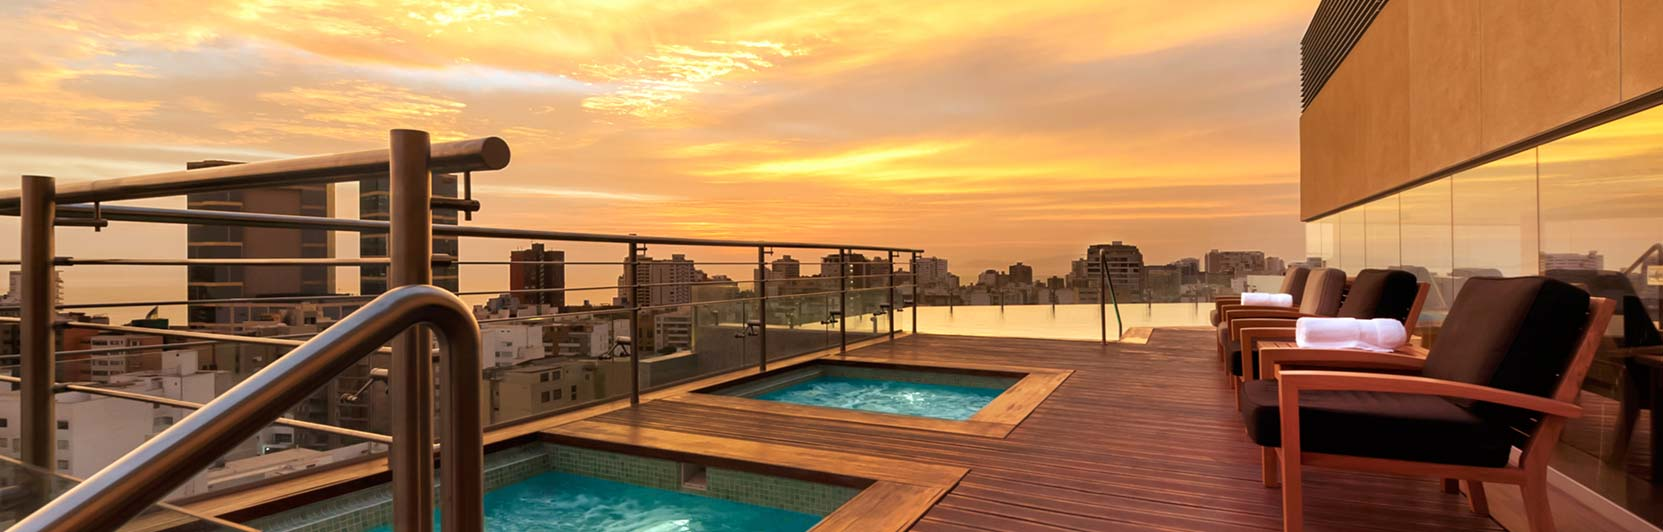 Hotel photography of rooftop pools at Hilton Lima Miraflores in Peru